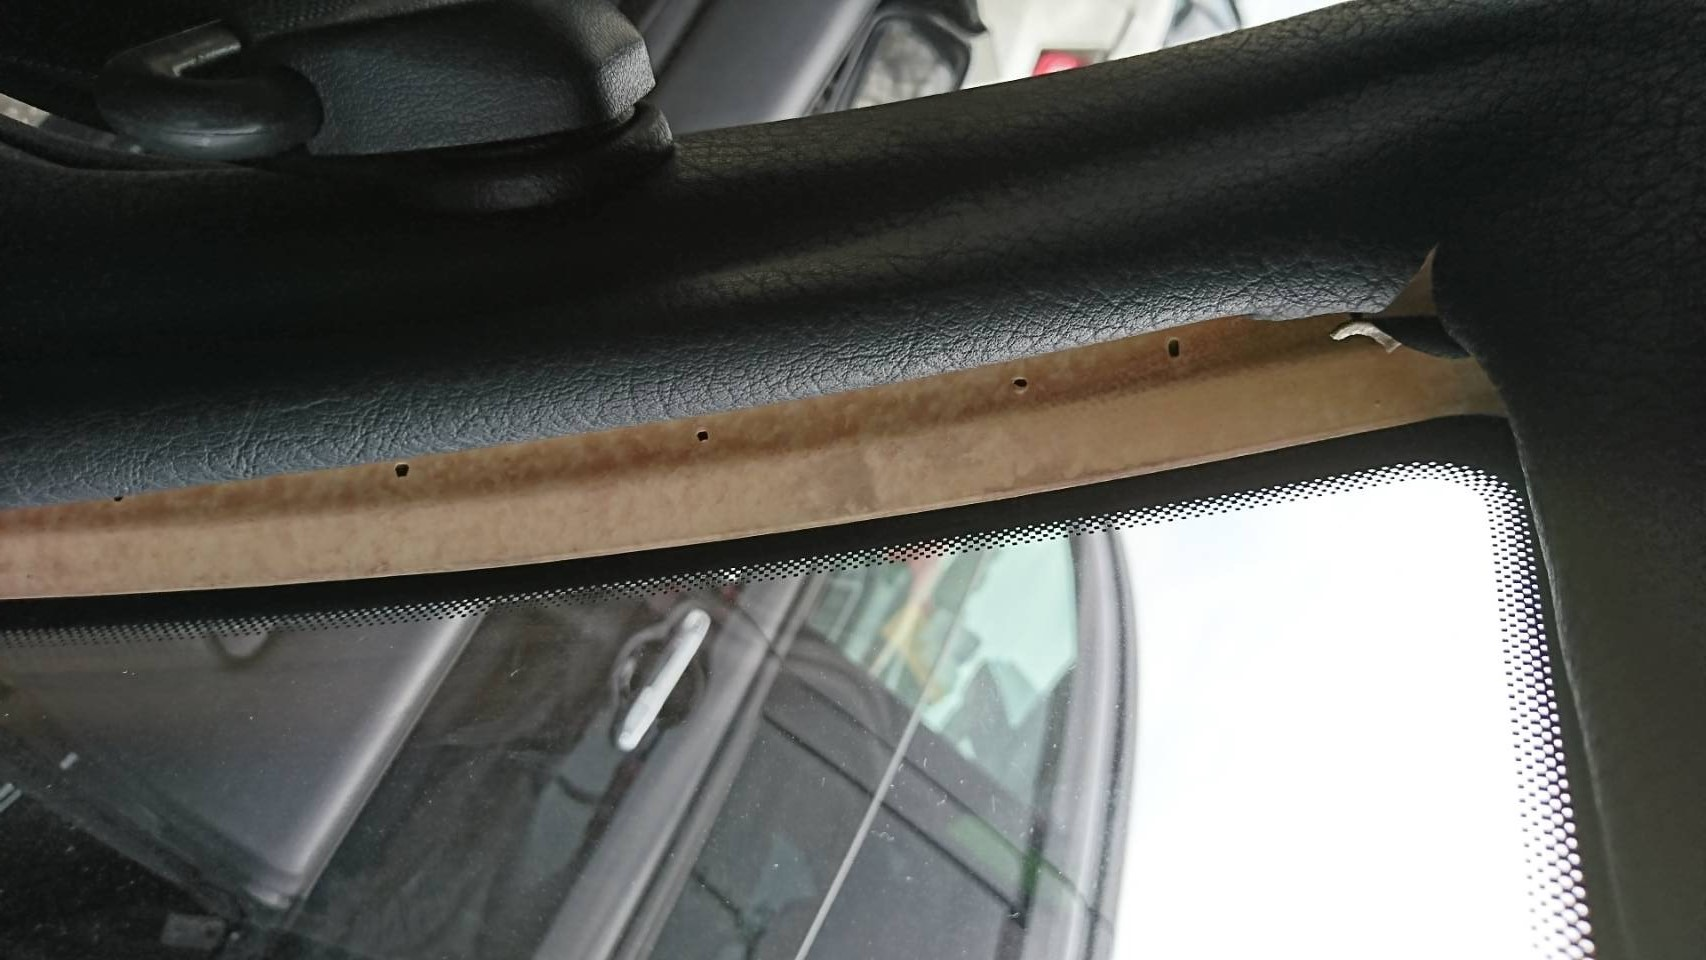 1992 Nissan Skyline R32 GTR door trim damage 2